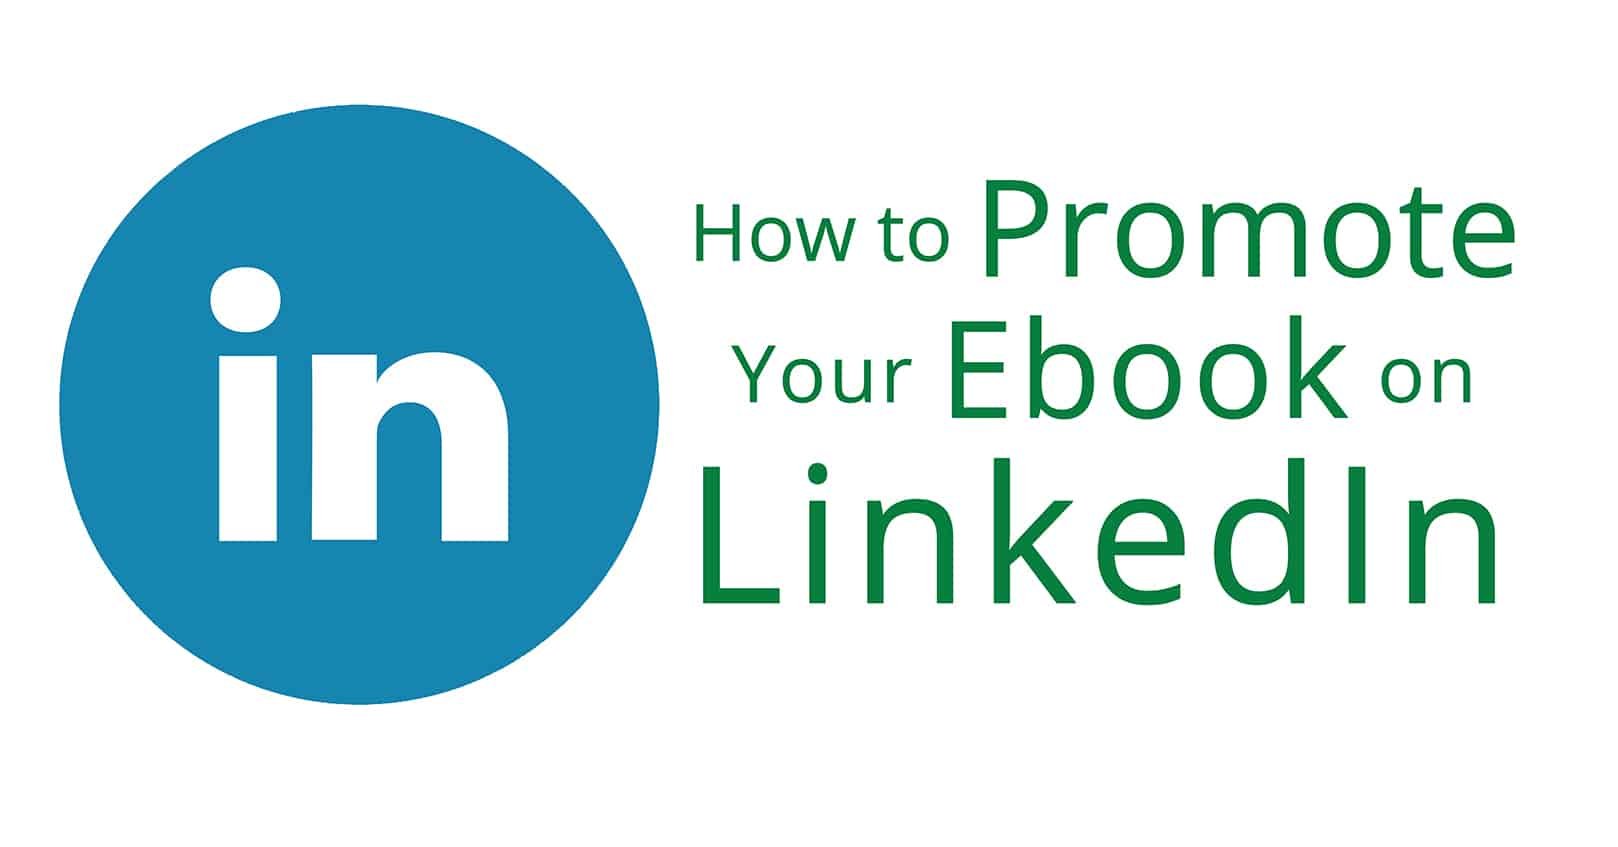 Promote your ebook on LinkedIn